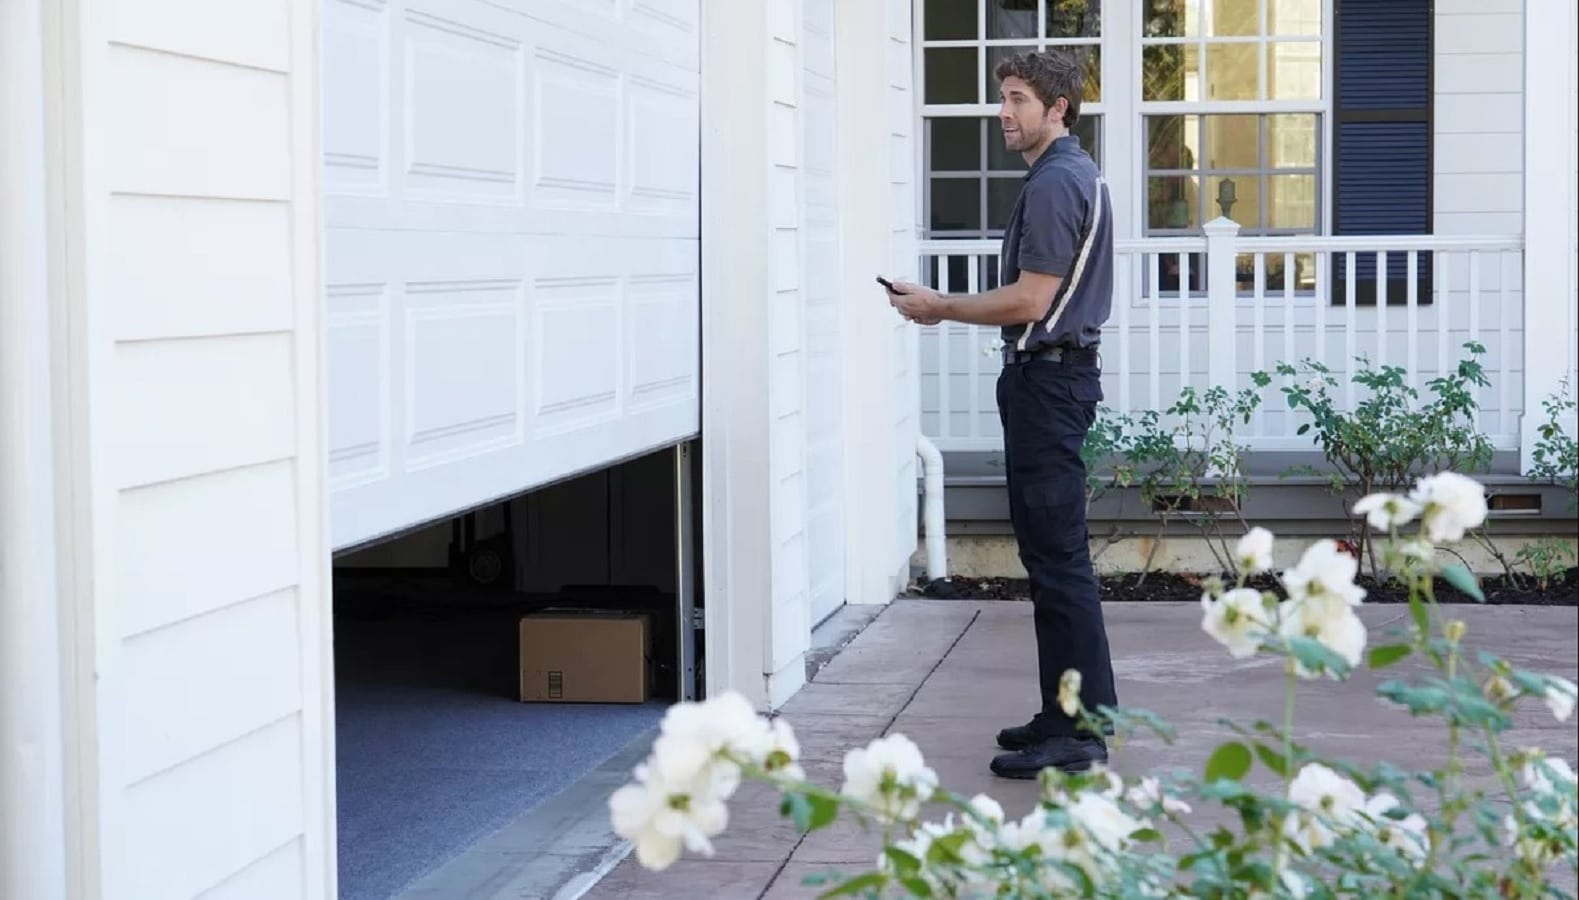 key by amazon feature being used by delivery person